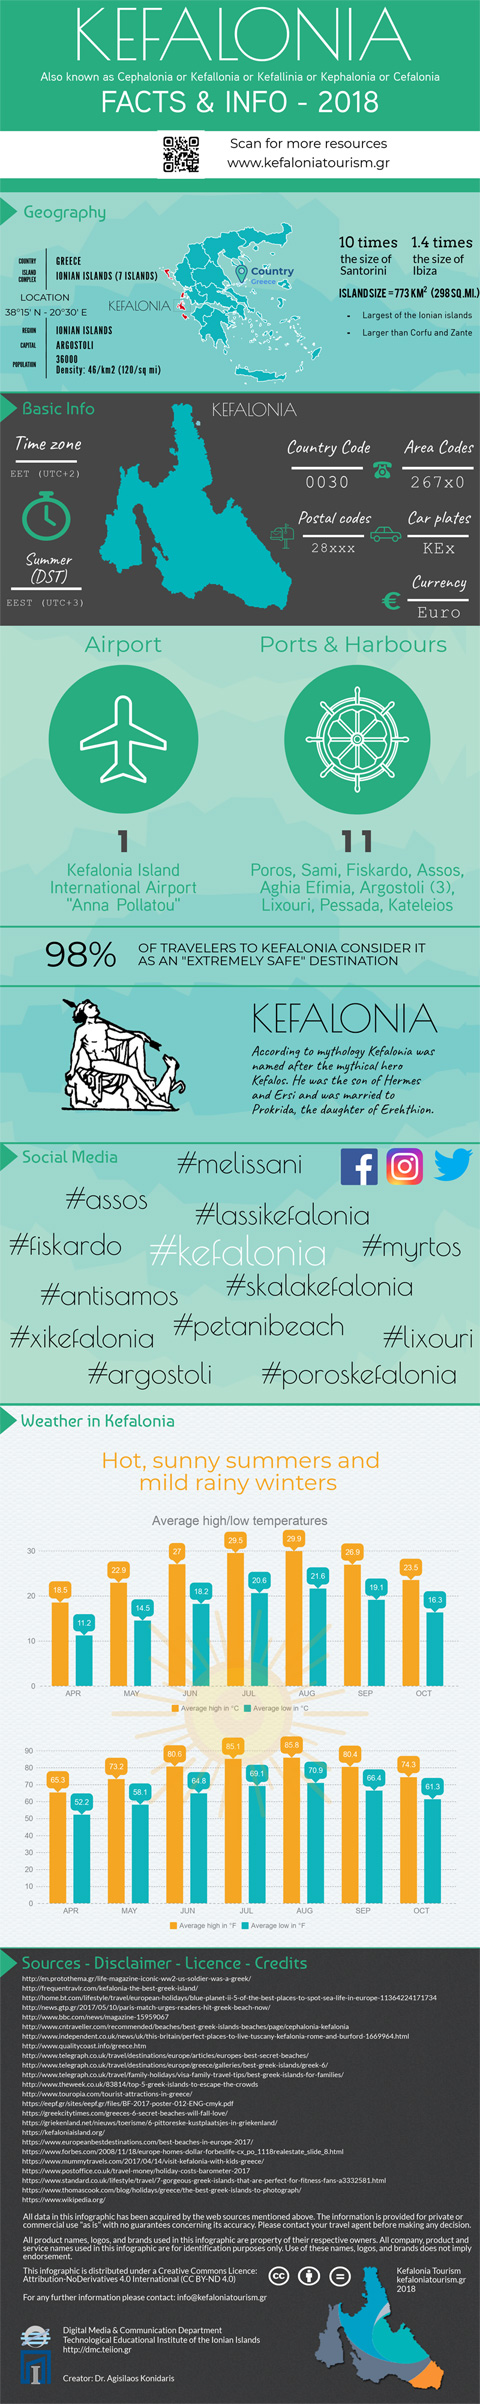 Kefalonia Facts & Info